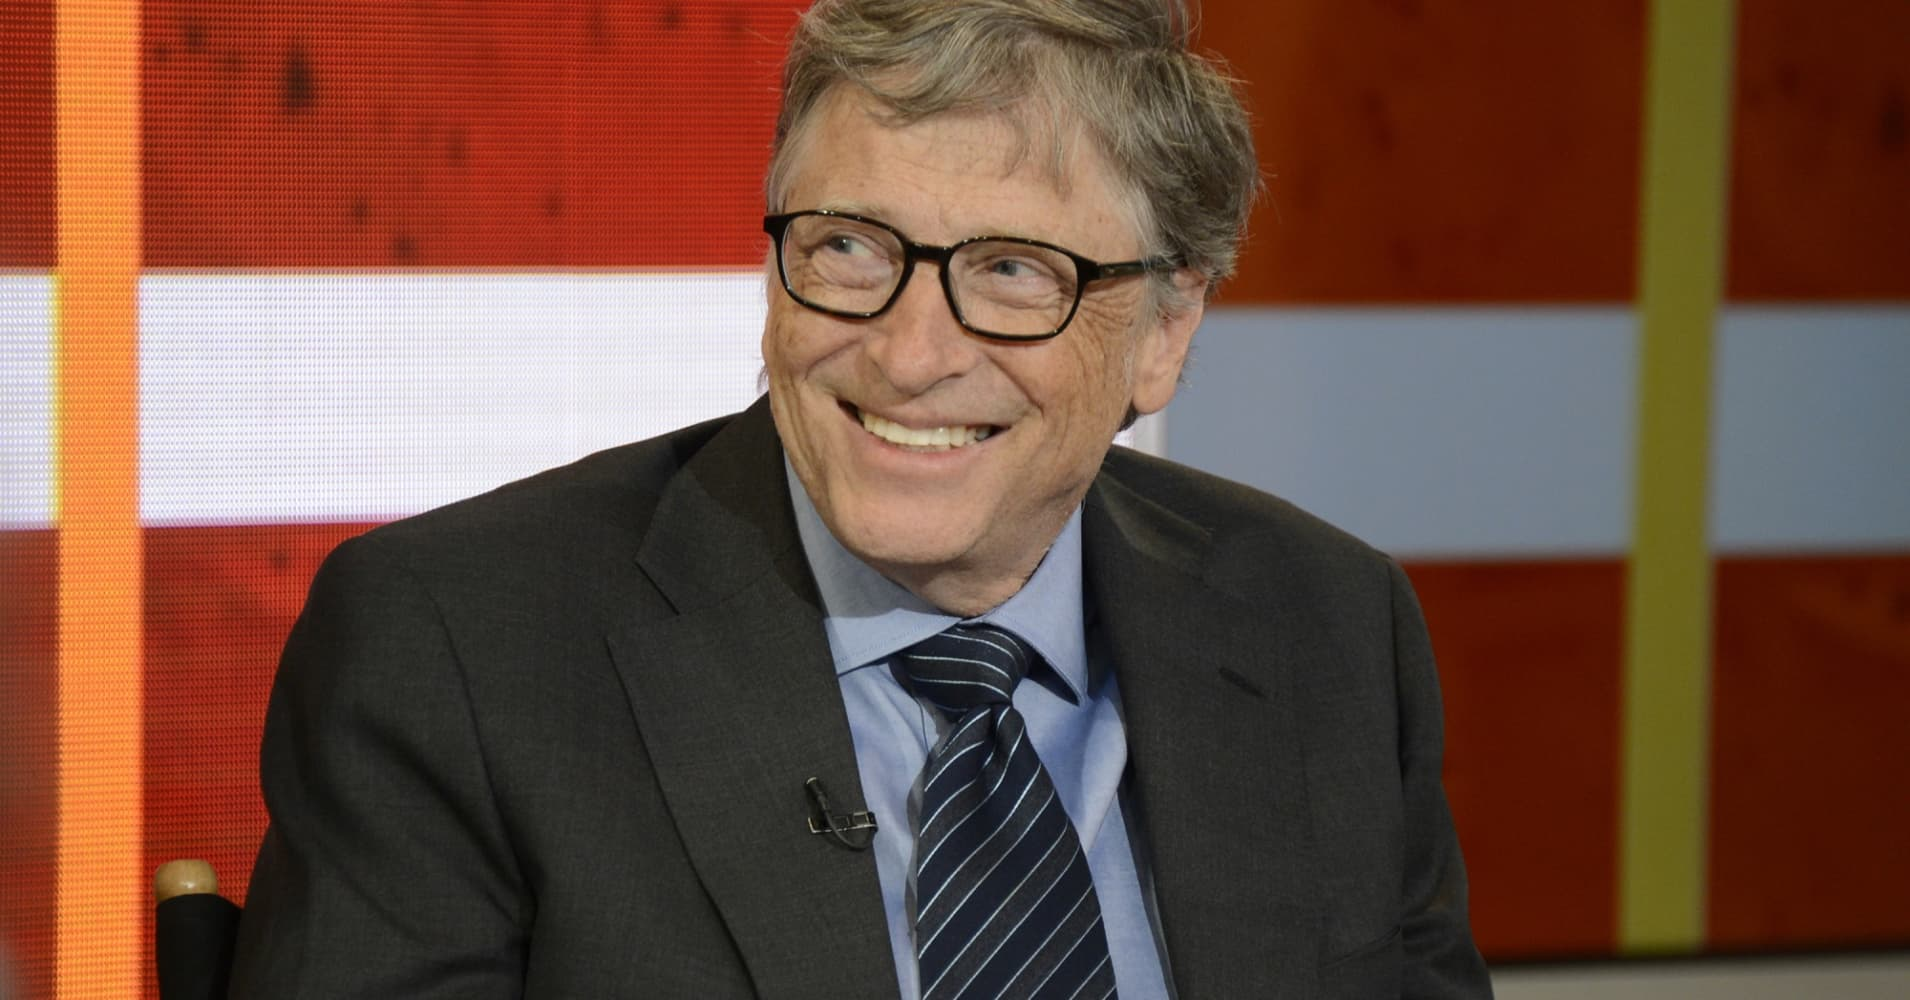 Bill Gates appears on 'Good Morning America' on ABC.